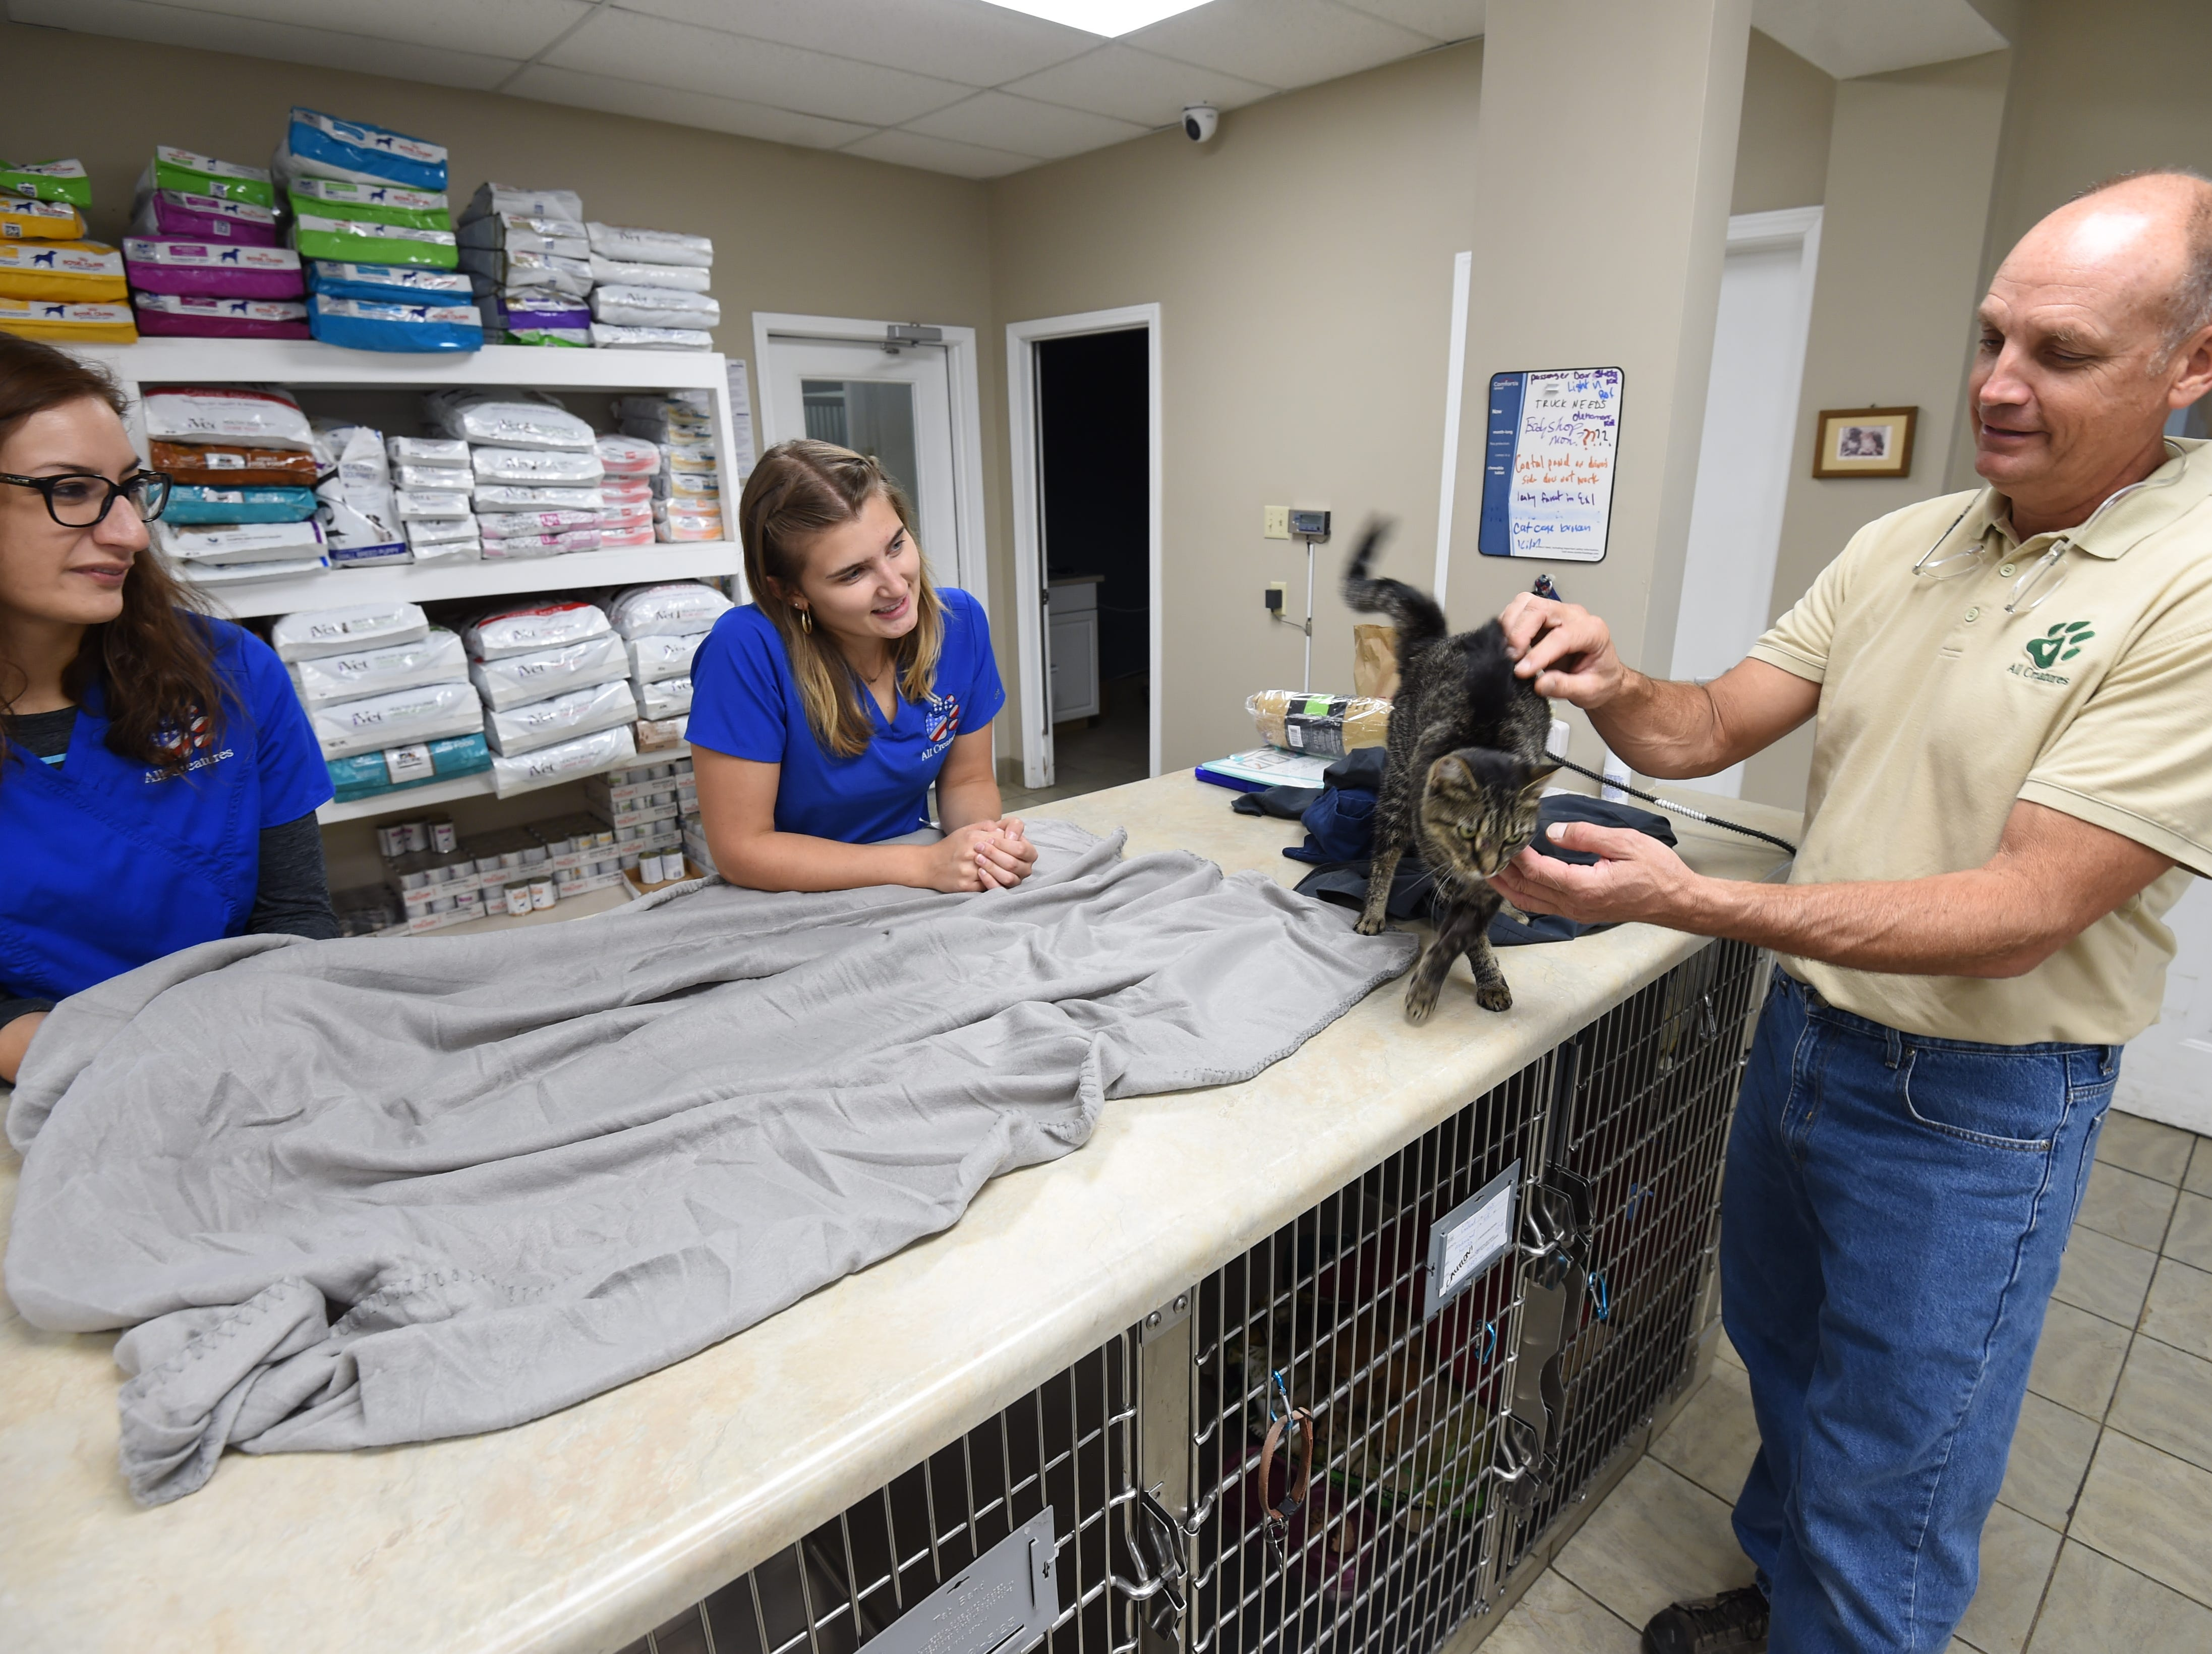 Dr. Rob Conner of All Creatures Veterinary Hospital along with clinic employees Stephanie Saunders, left, and Andrea Diedrichs check out Katniss, the cat who survived being shot in the head with an arrow.